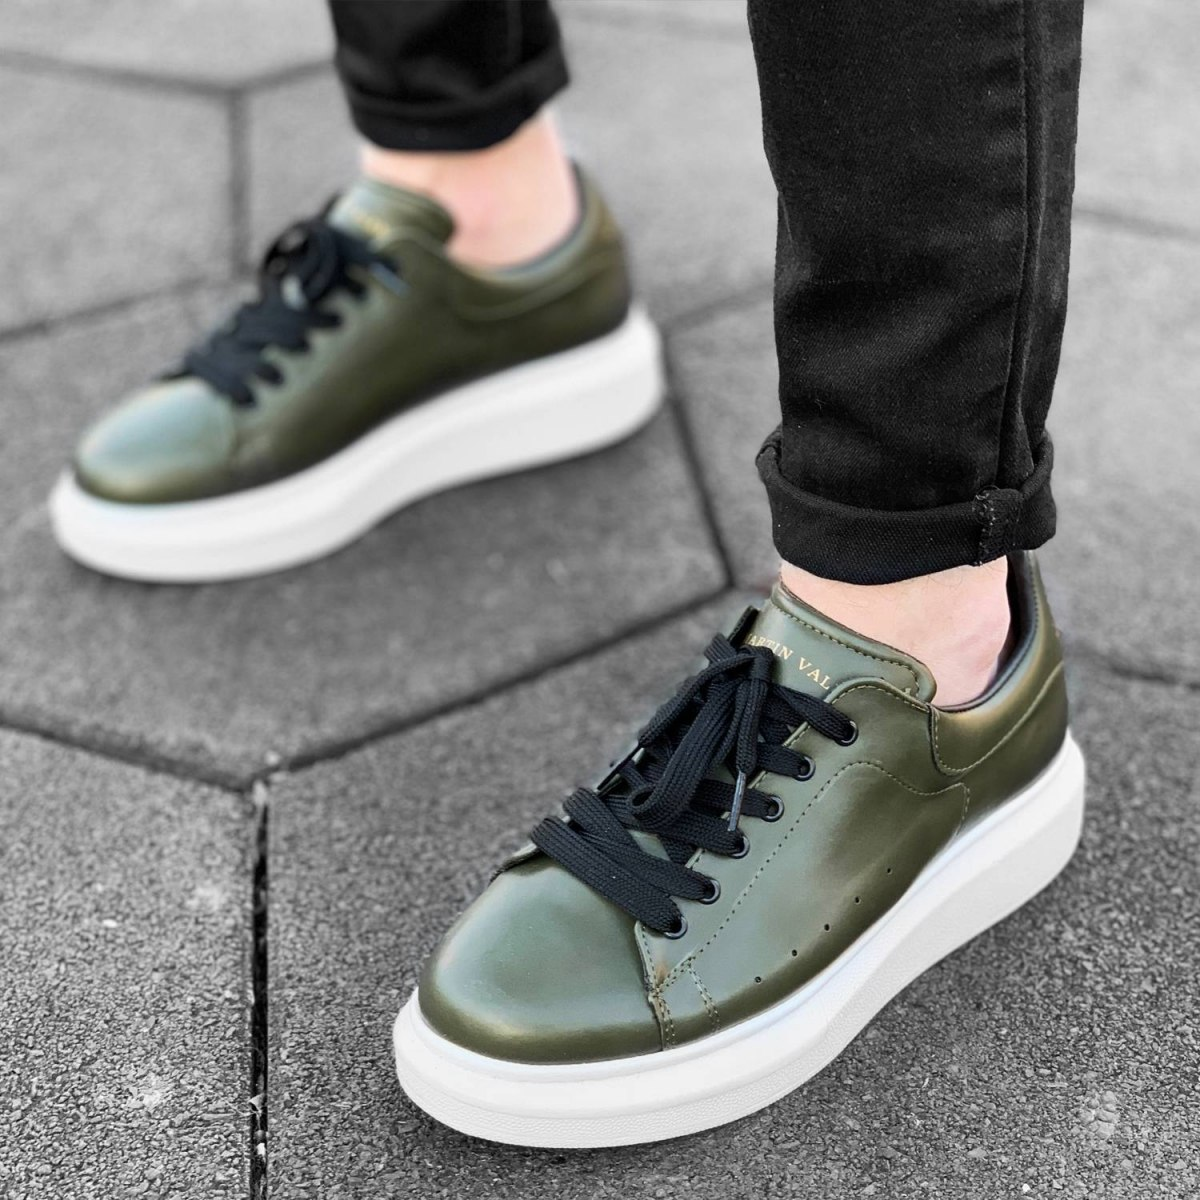 Hype Sole Sneakers in Khaki-White - 2